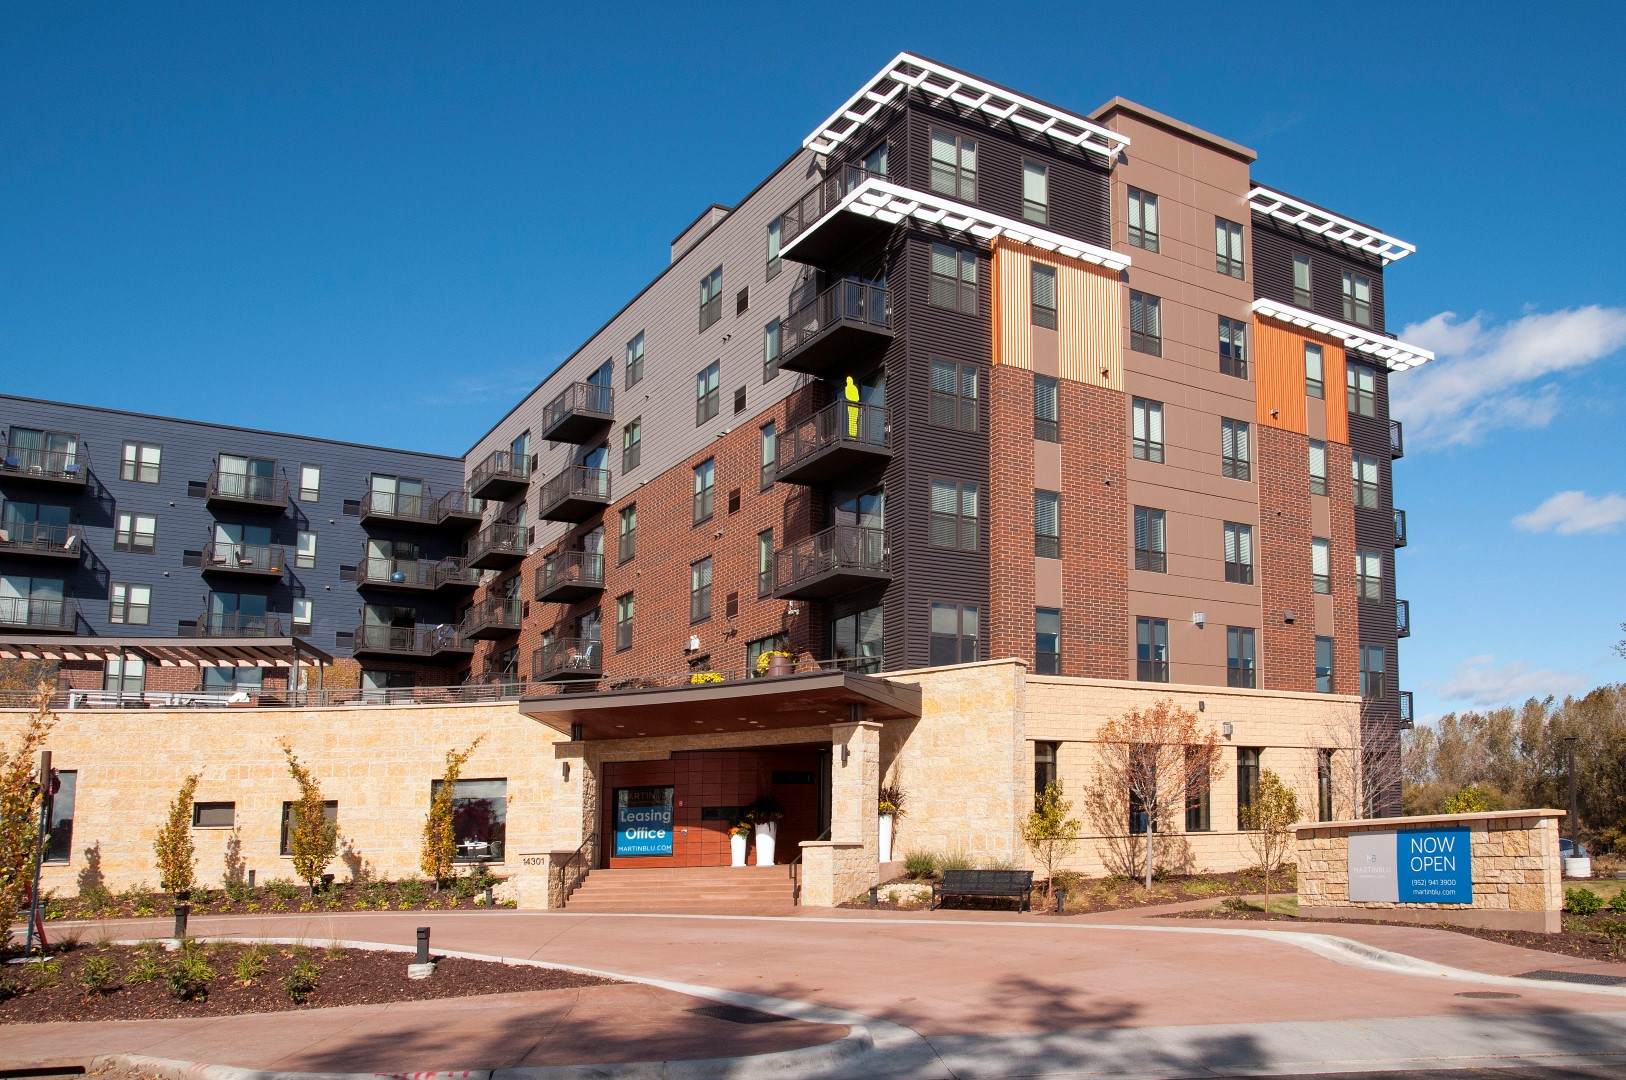 MartinBlu Apartments in Eden Prairie, MN_Exterior 3.jpg